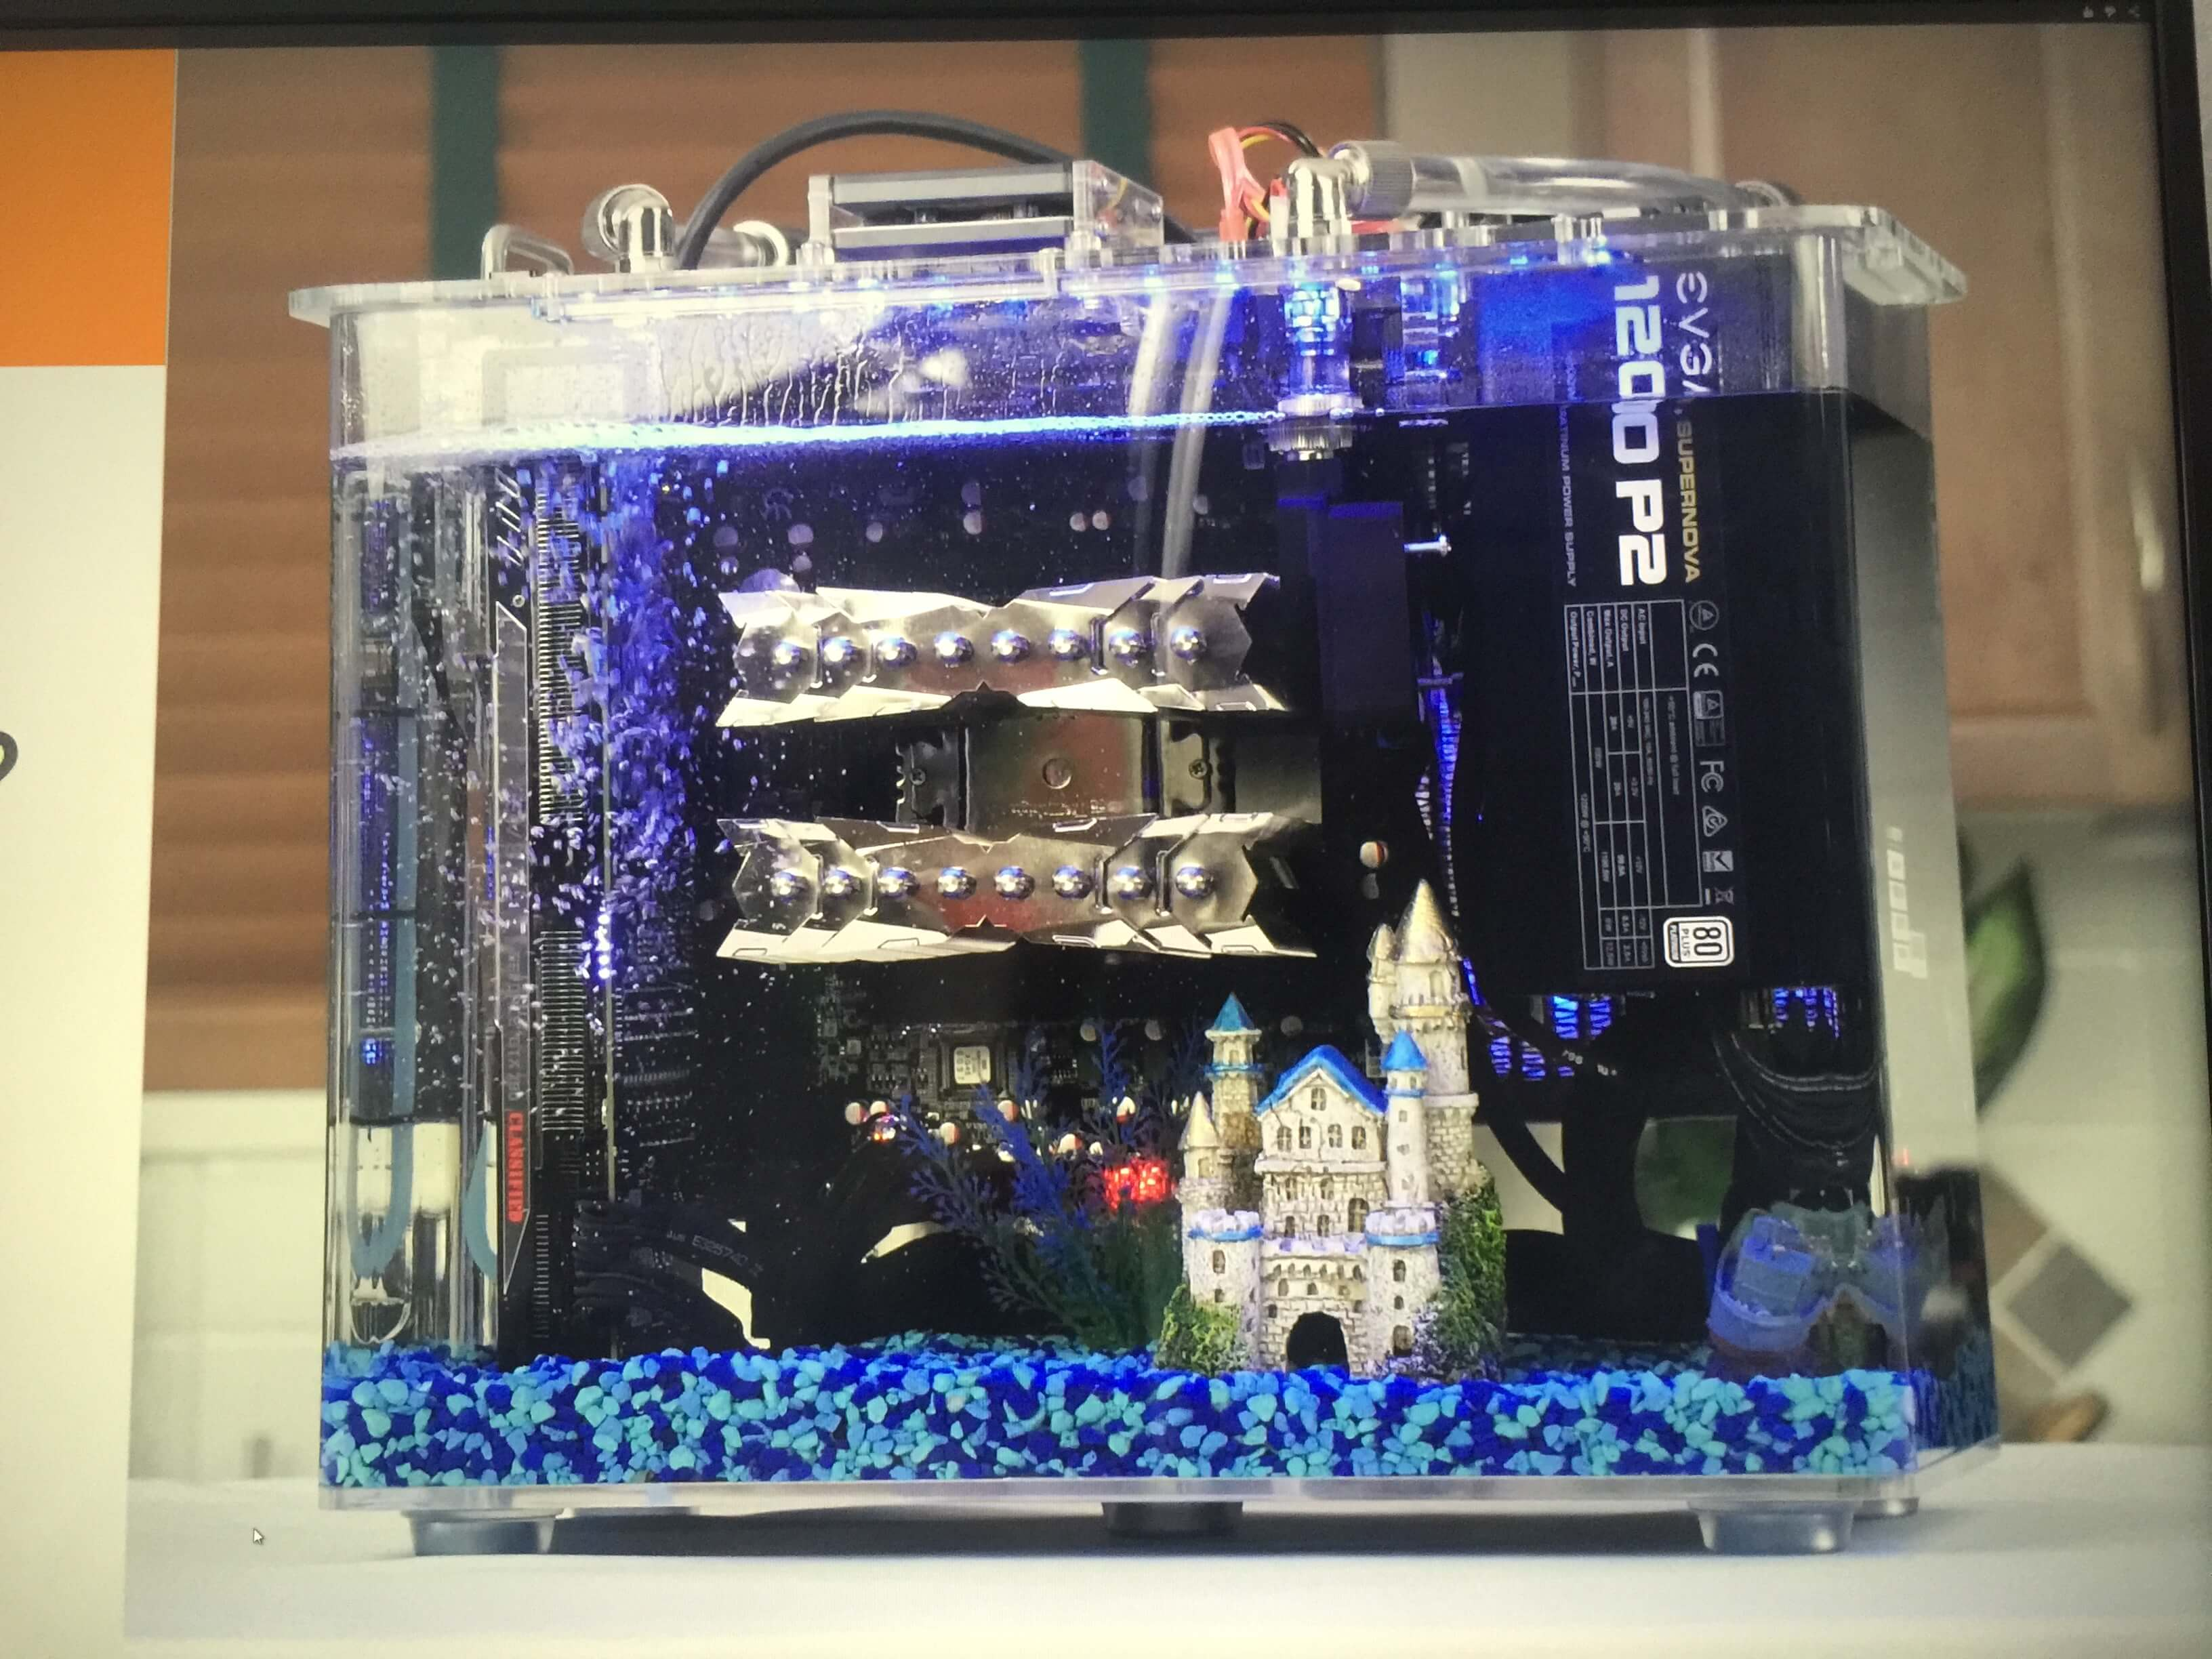 Here S Why This Computer Is Submerged In Clear Oil